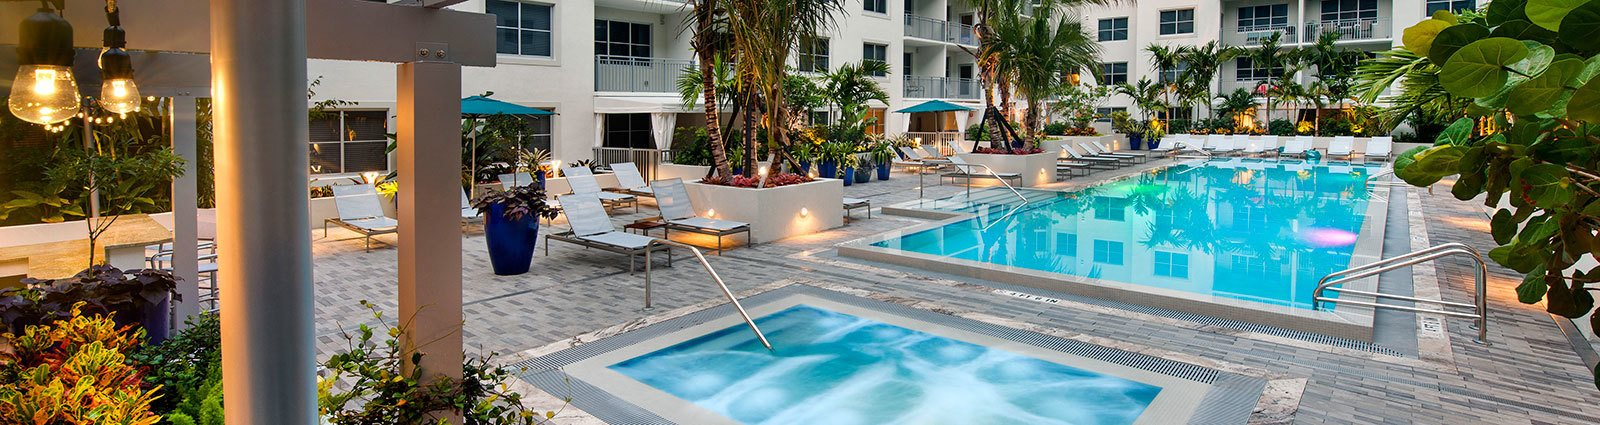 Our apartment community in Ft. Lauderdale offers luxury amenities to match your ideal lifestyle